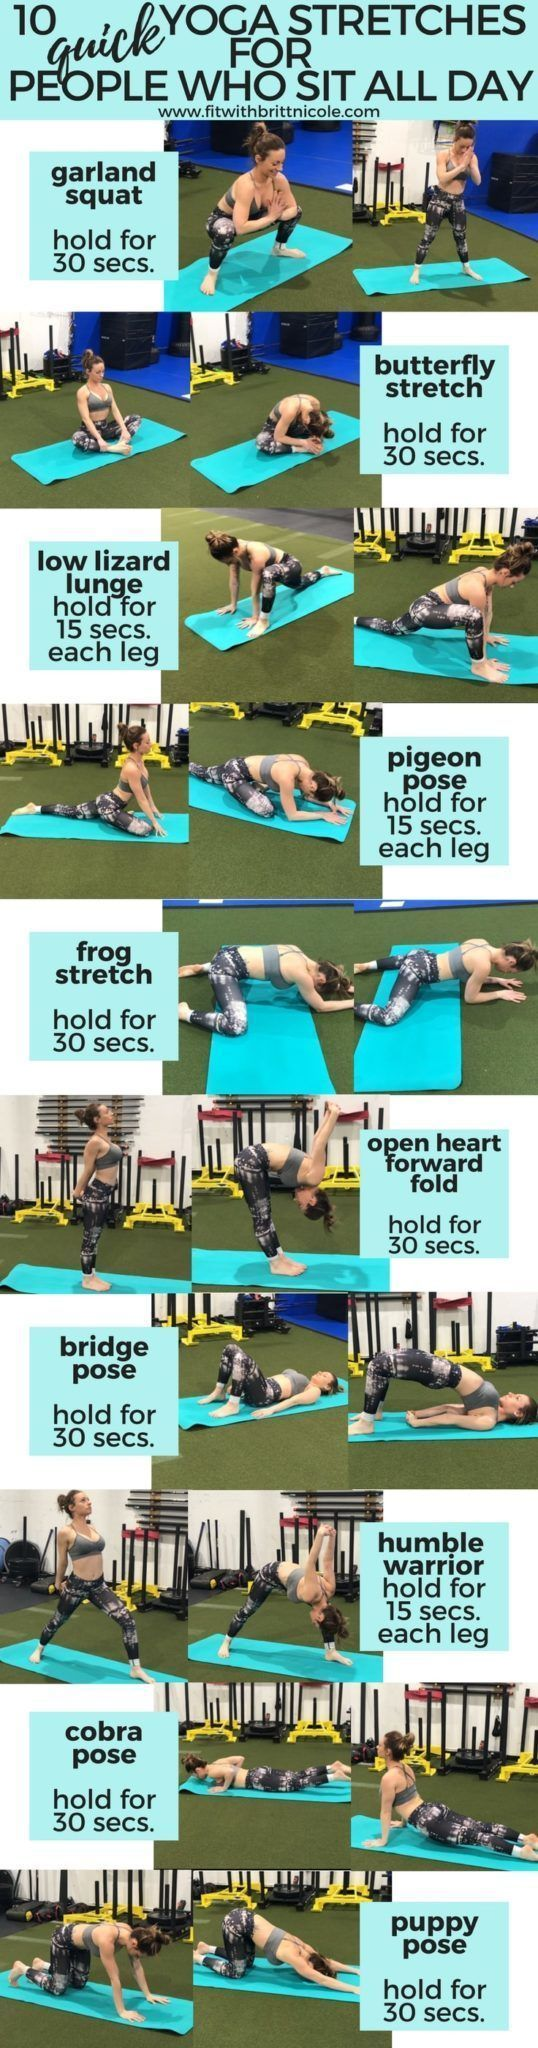 10 Quick Yoga Stretches for Women Who Sit All Day Hier sind 10 kurze Yogastrecke…